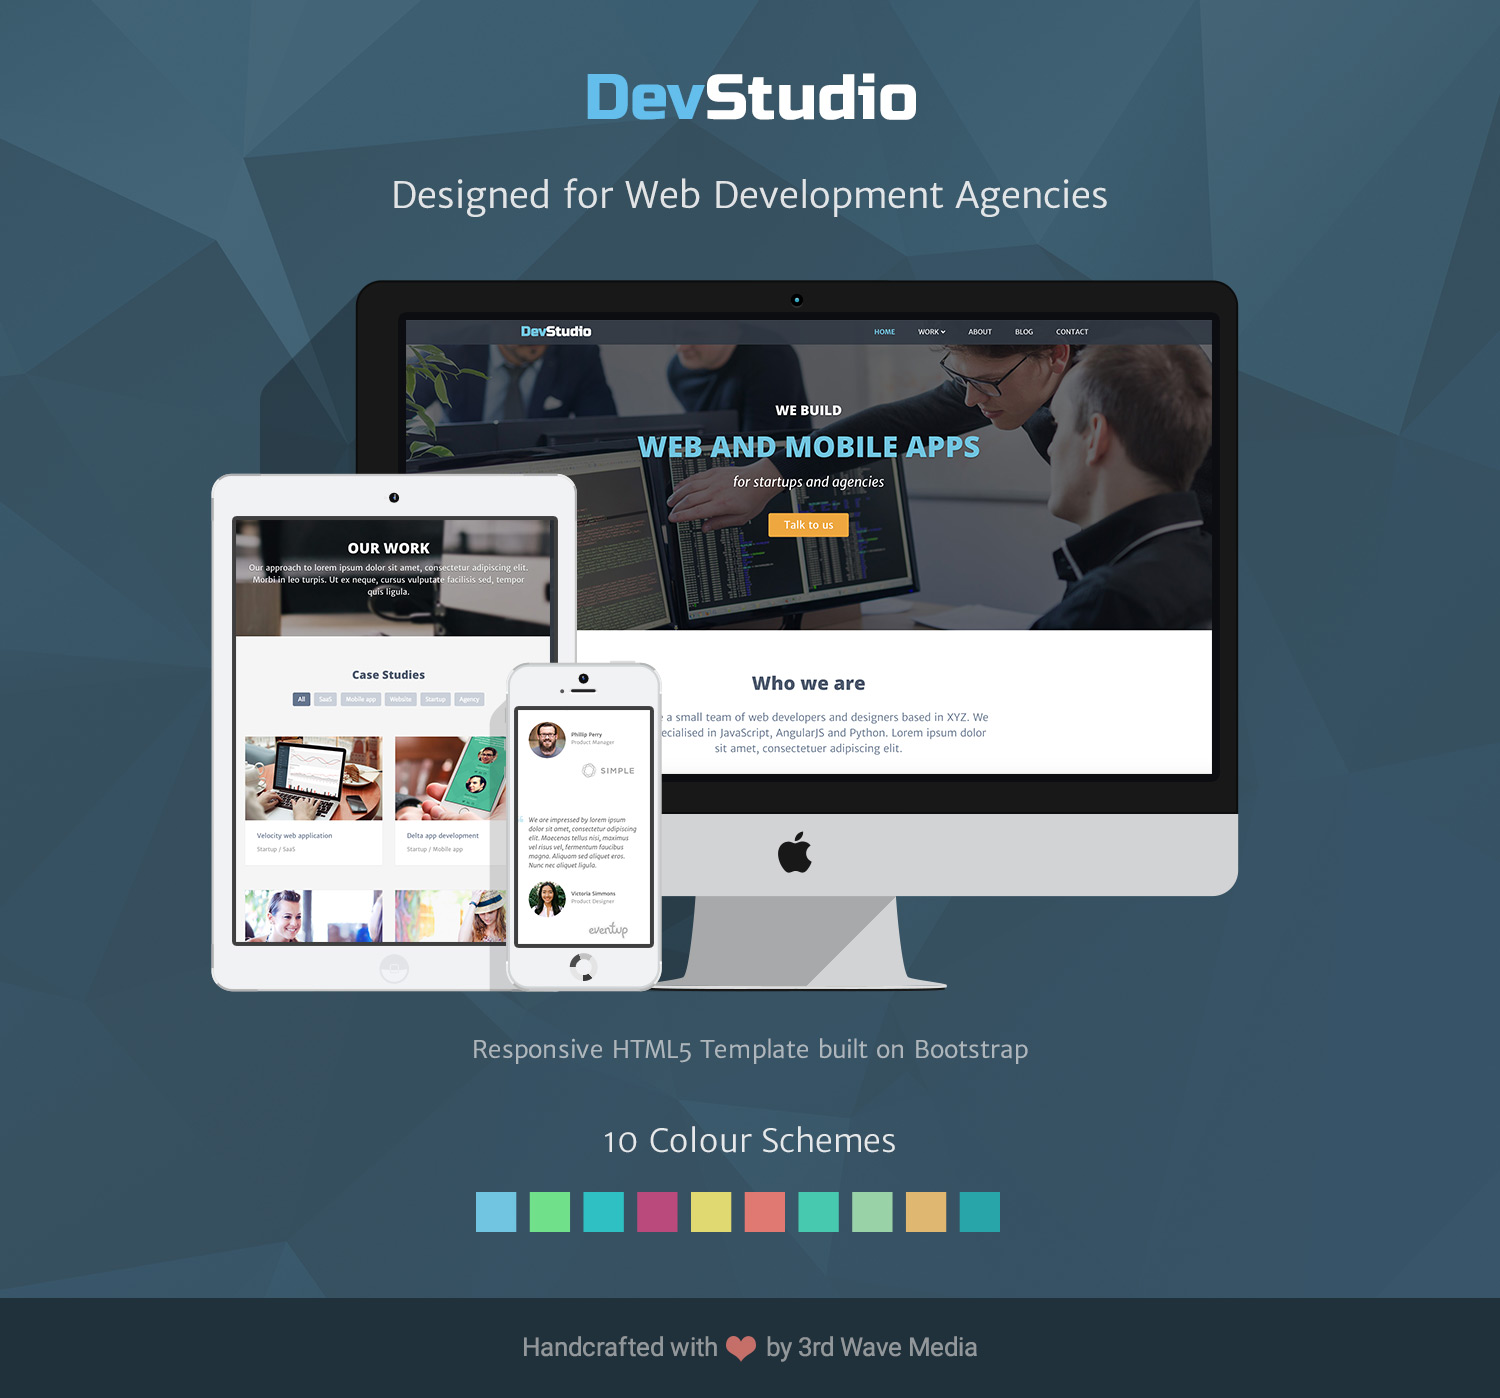 Responsive-Bootstrap-Template-for-Web-Development-Agency-DevStudio